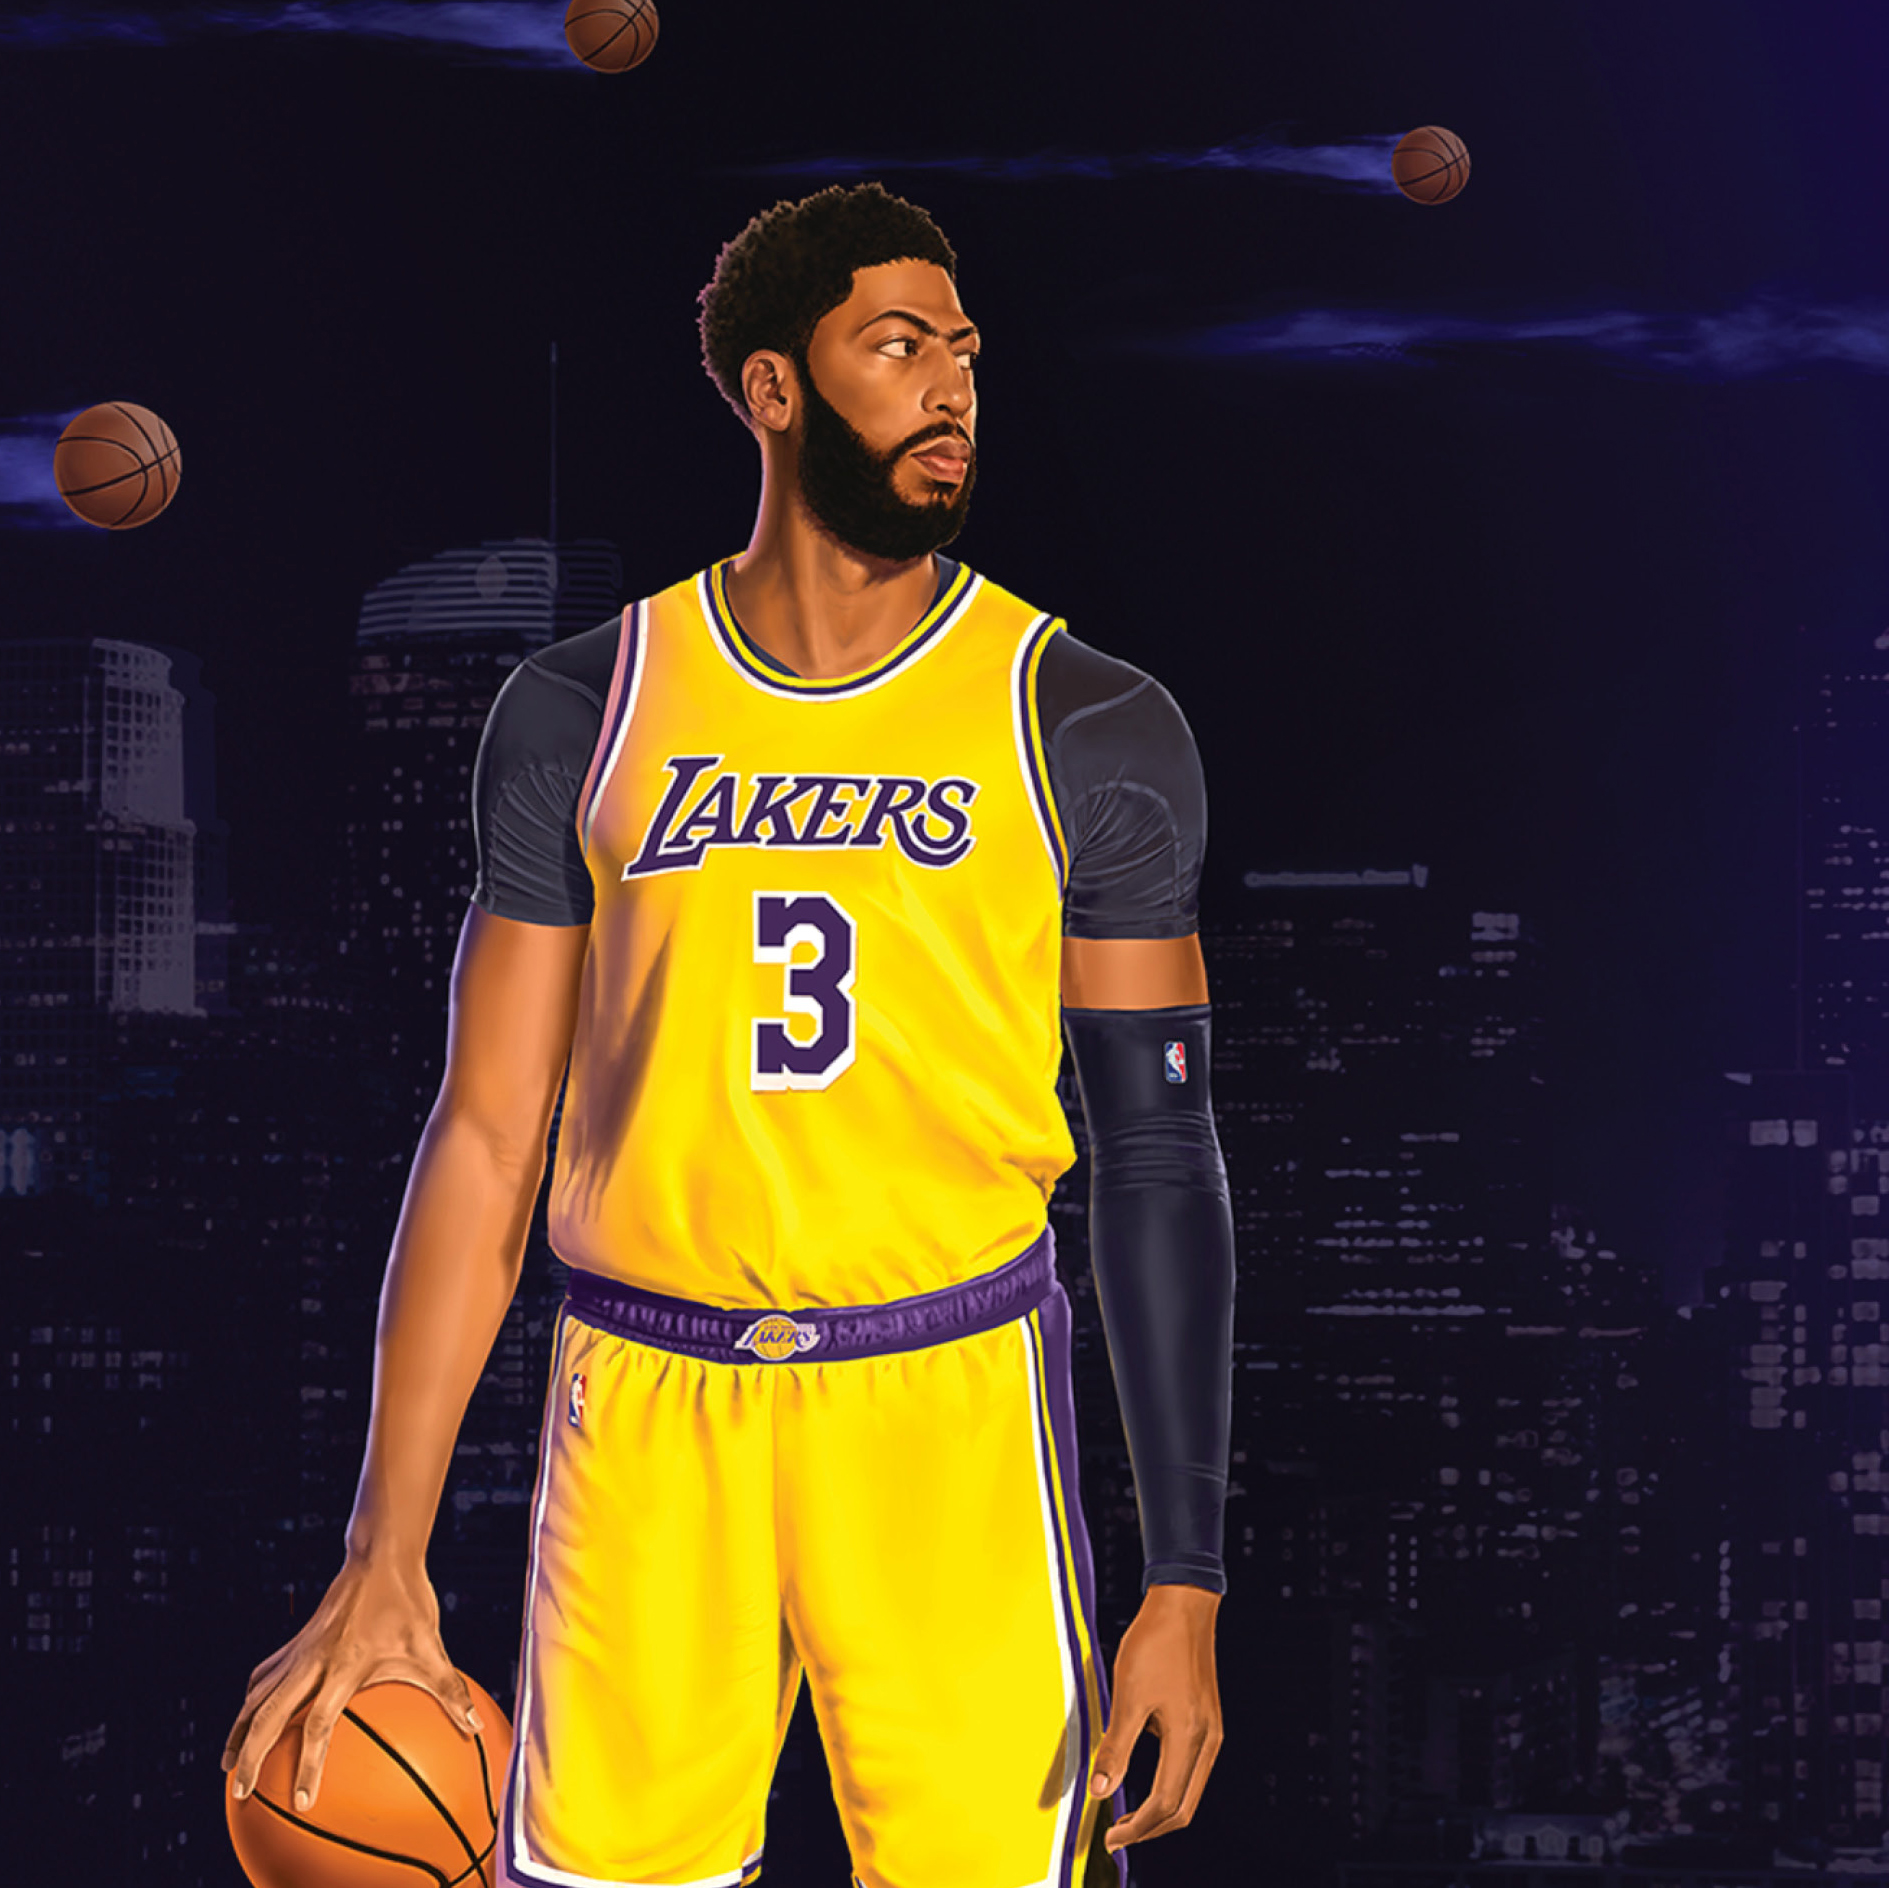 Anthony Davis holds a basketball against a deep purple LA landscape as balls speed through the air.